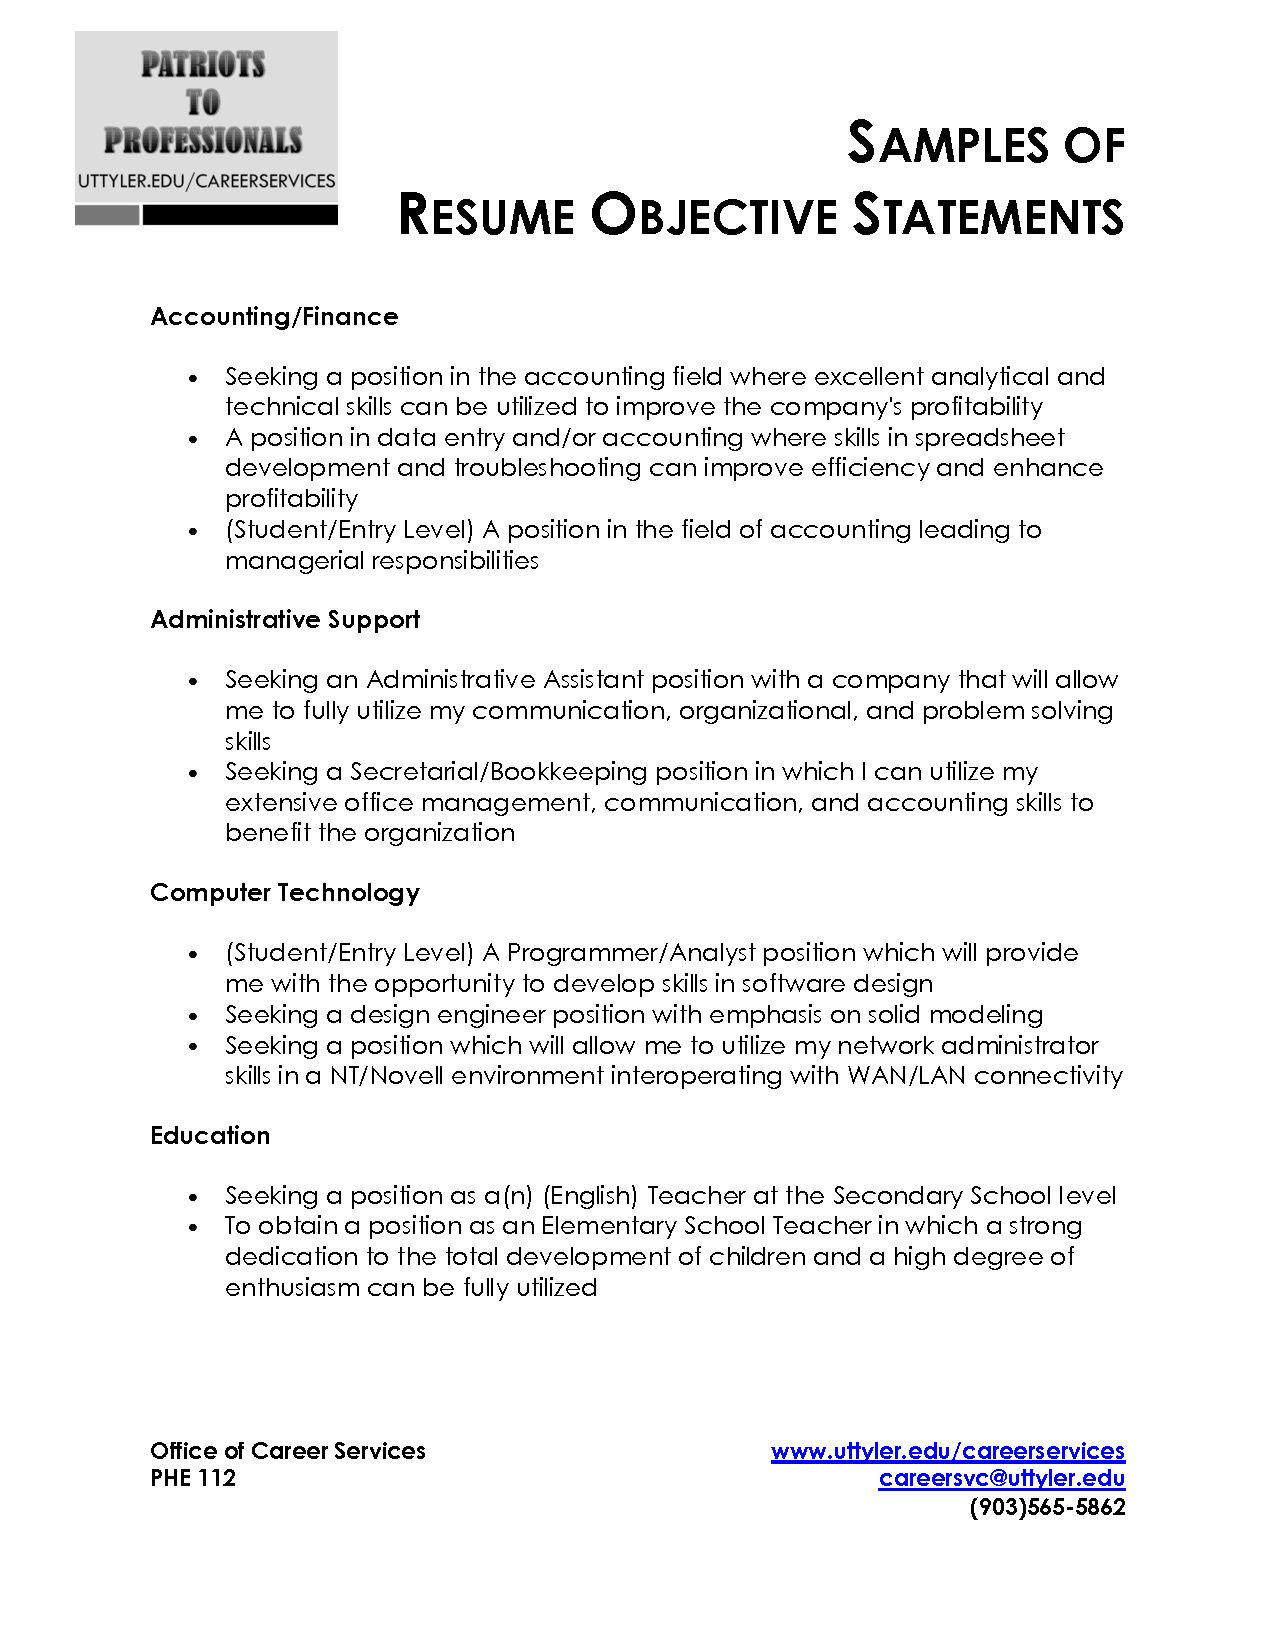 Resume Objective Statement Sample http//www